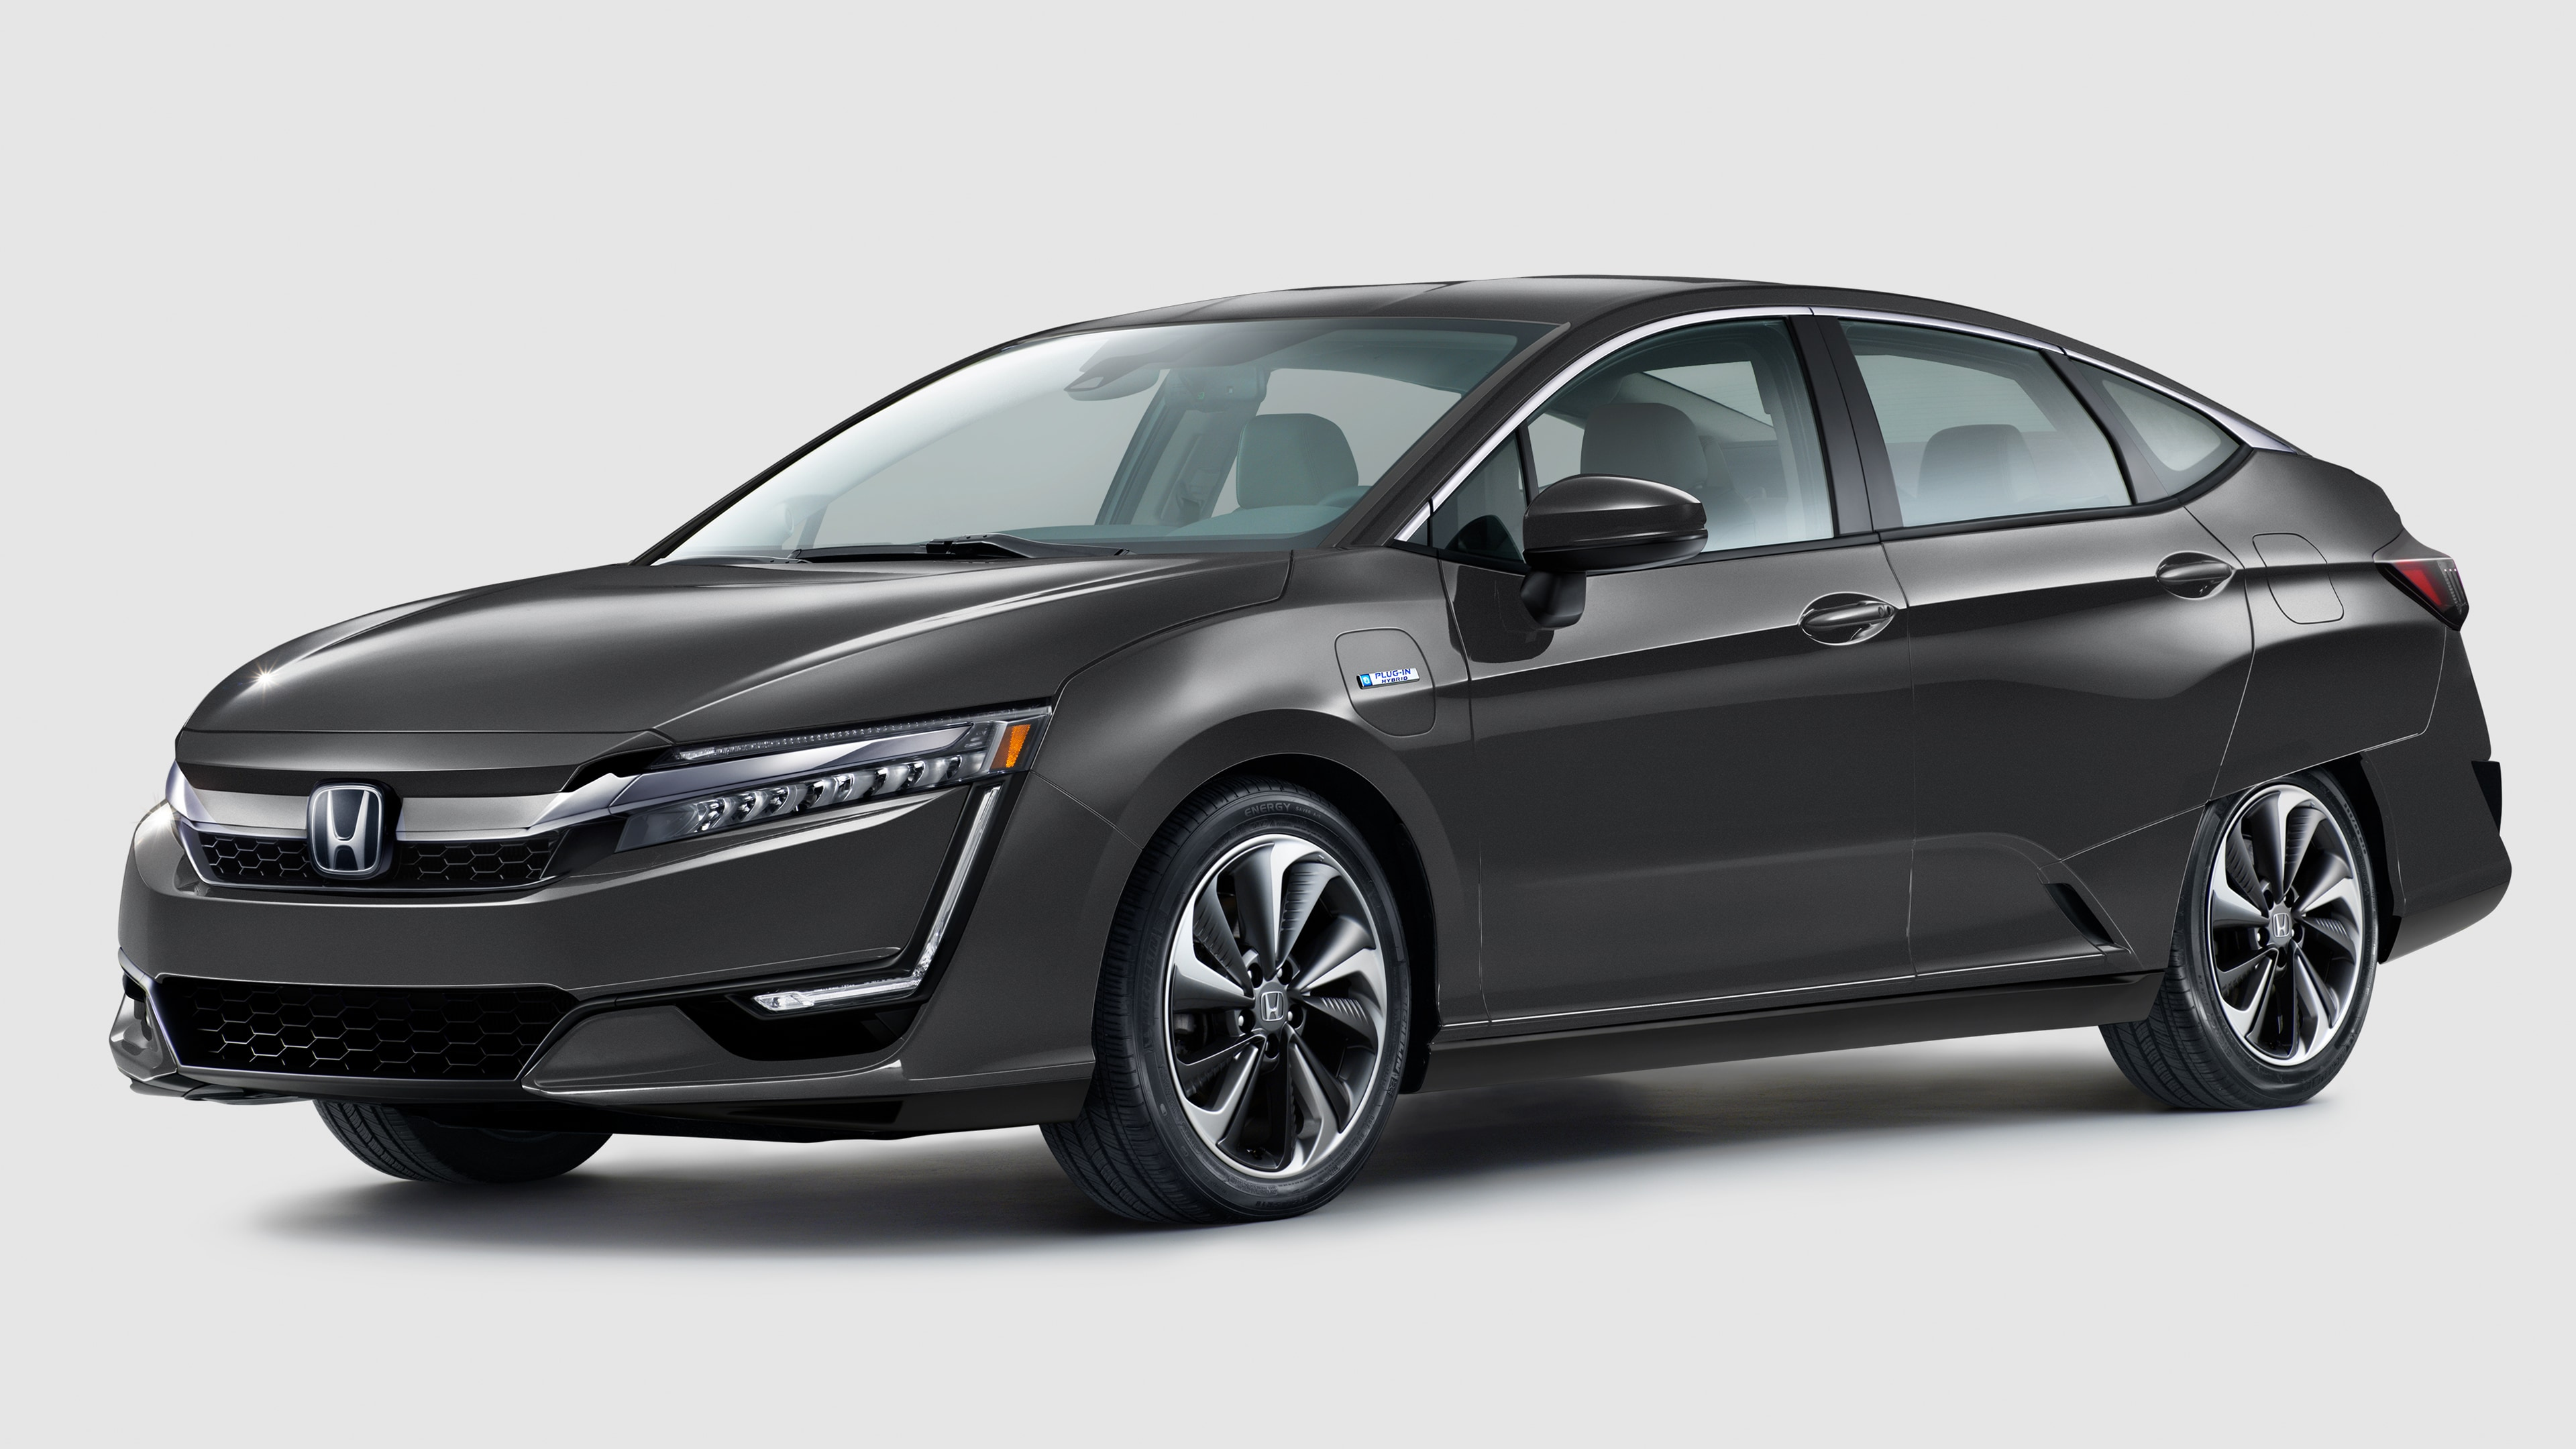 2021 Honda Clarity parked